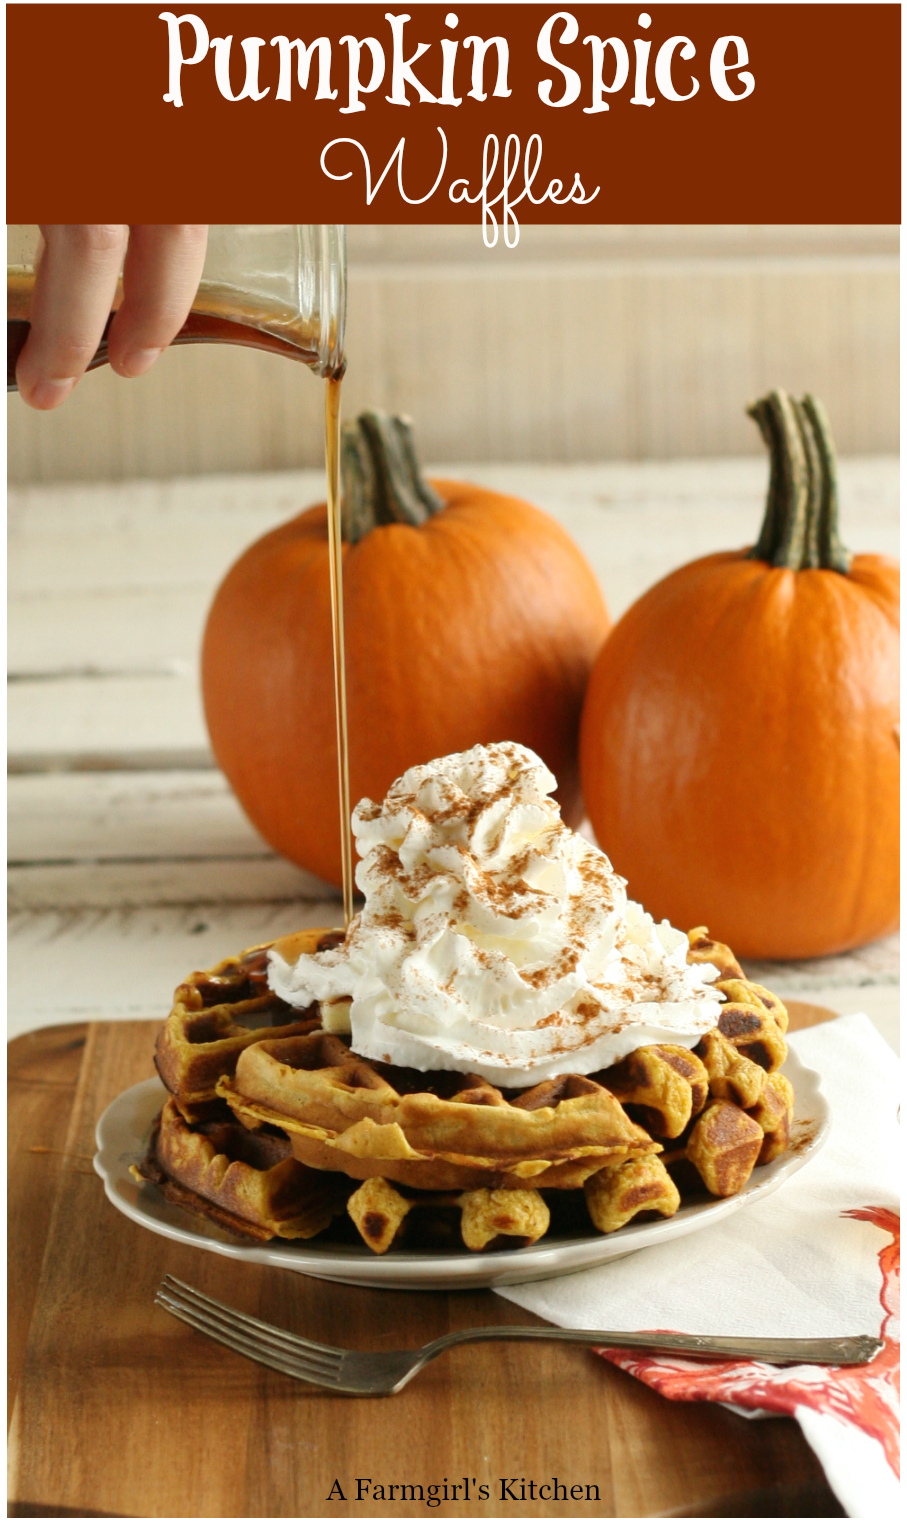 Pumpkin Waffles are the perfect treat for your weekend breakfast or brunch. Easy to make with only a few simple ingredients. #recipe #pumpkin #homemade #breakfast #pumpkinspice